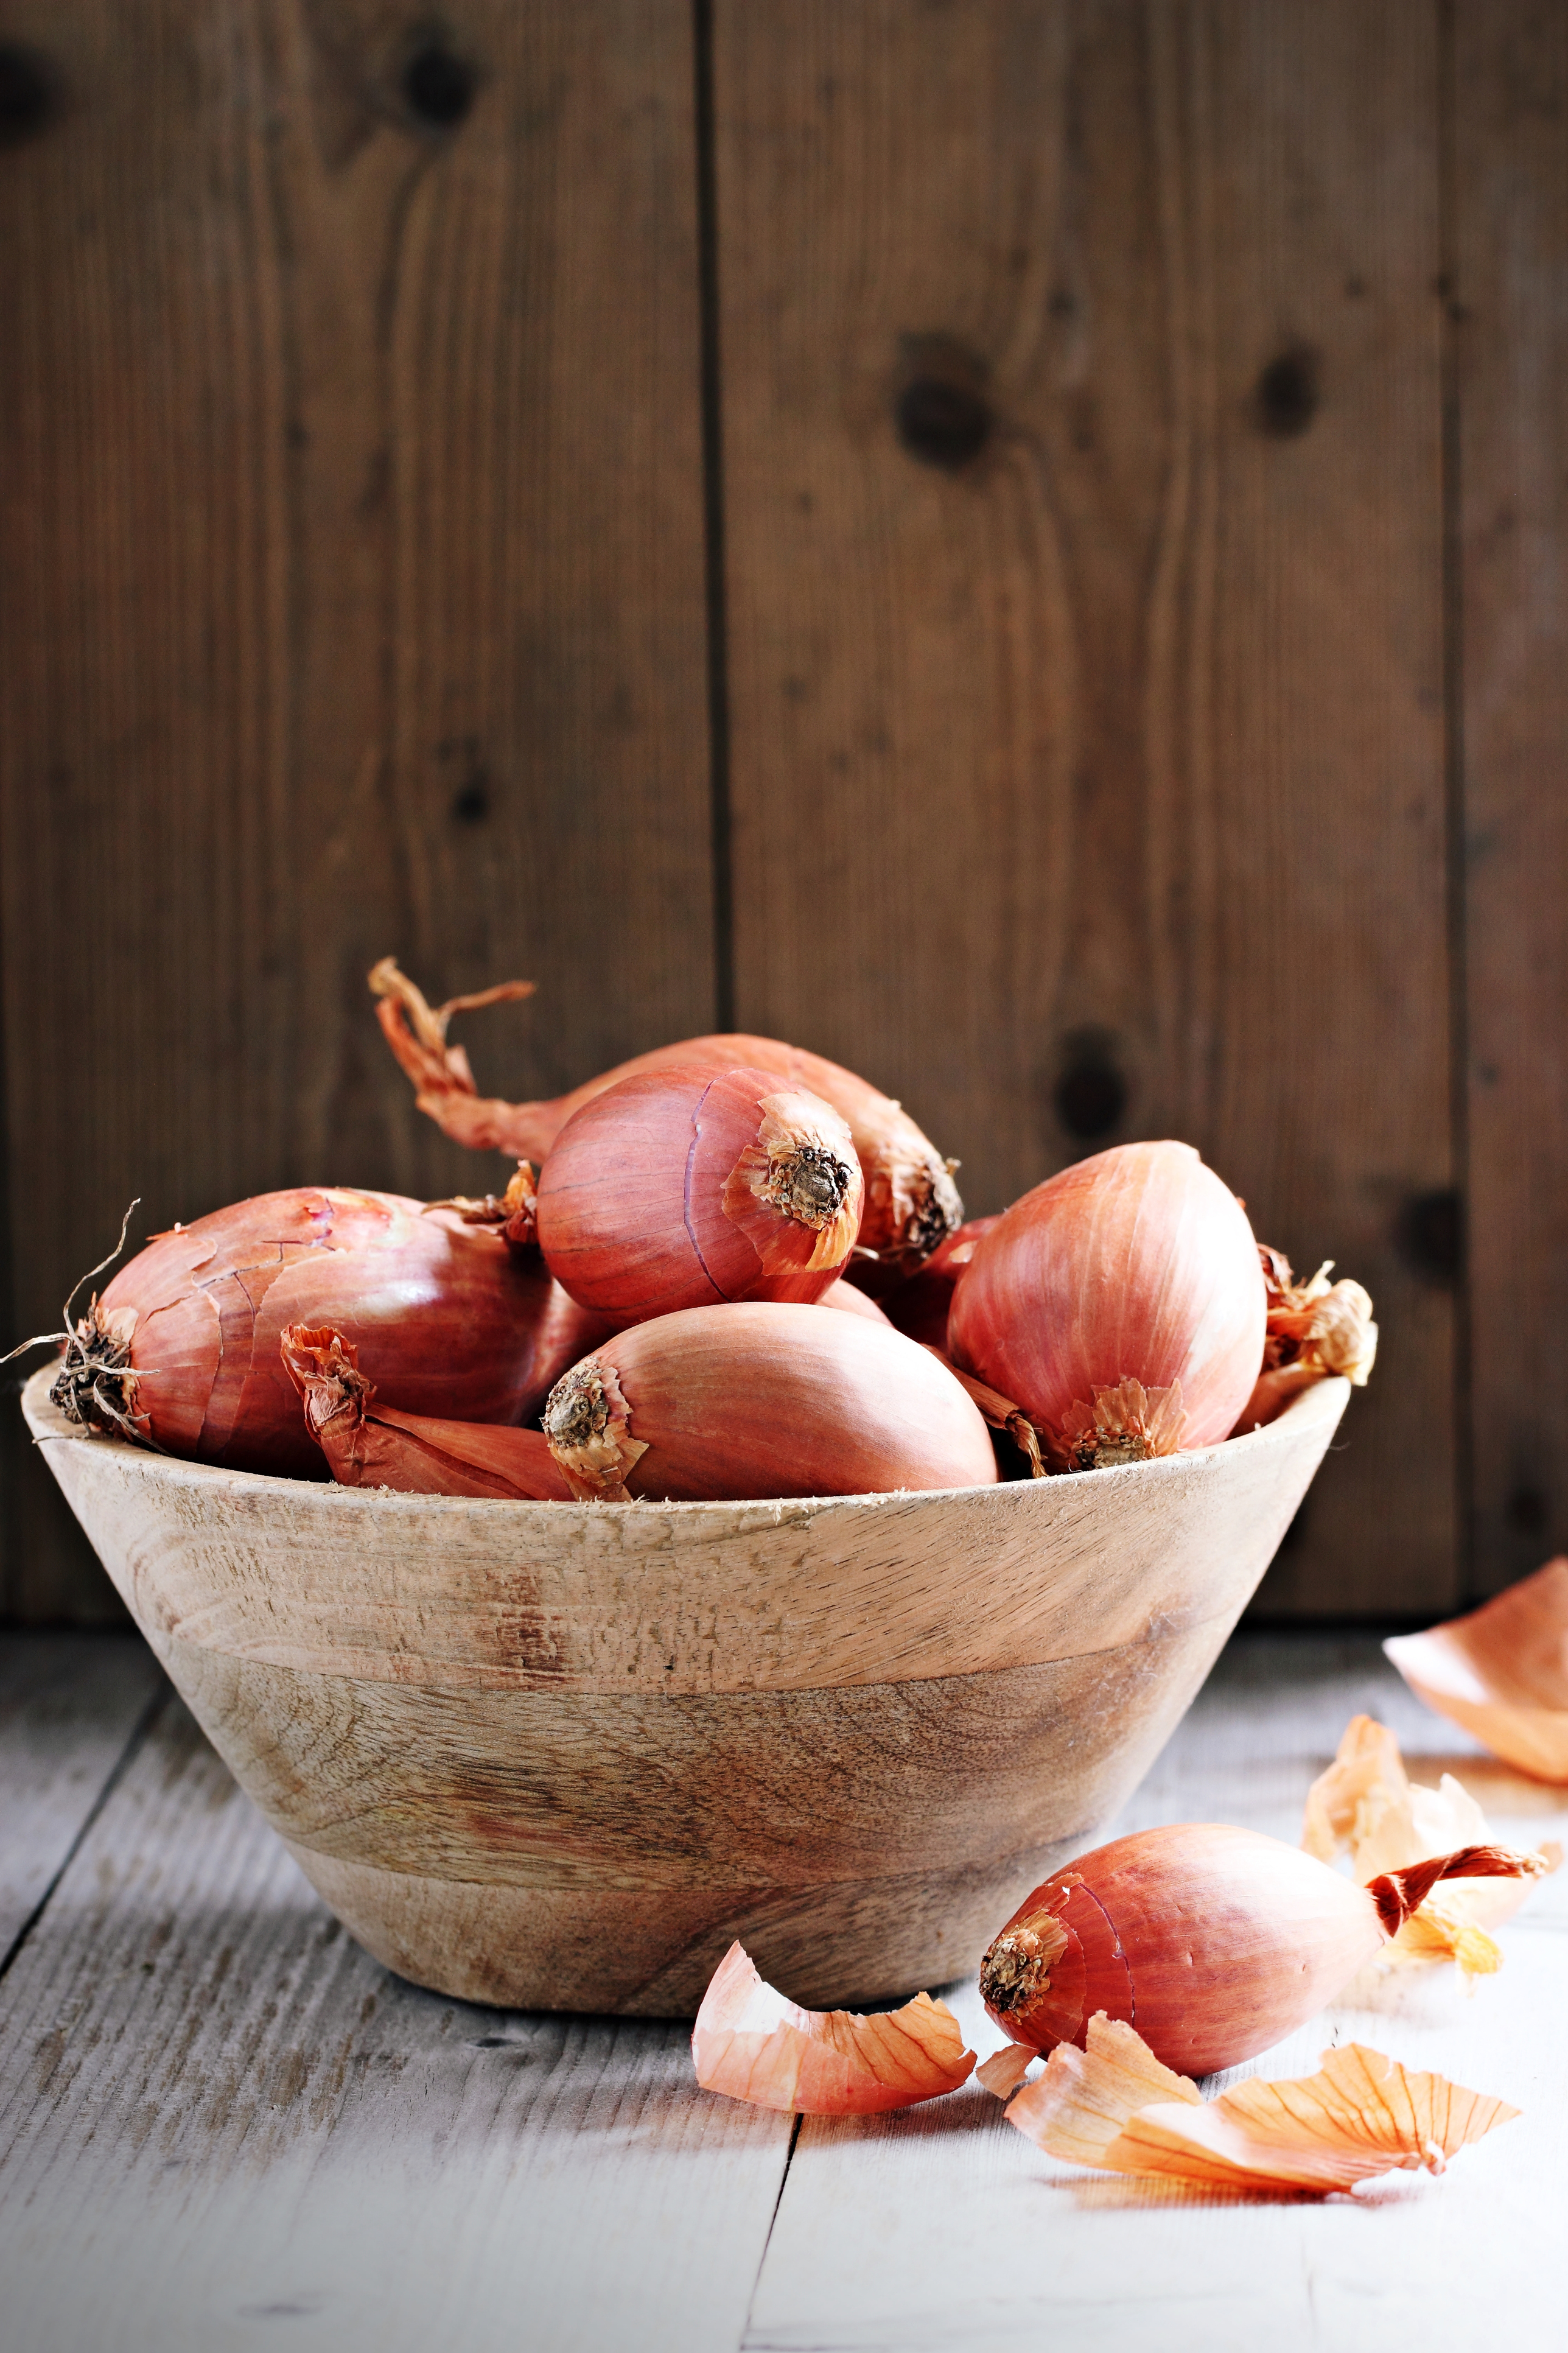 Shallot on a rustic wooden table.Selective focus